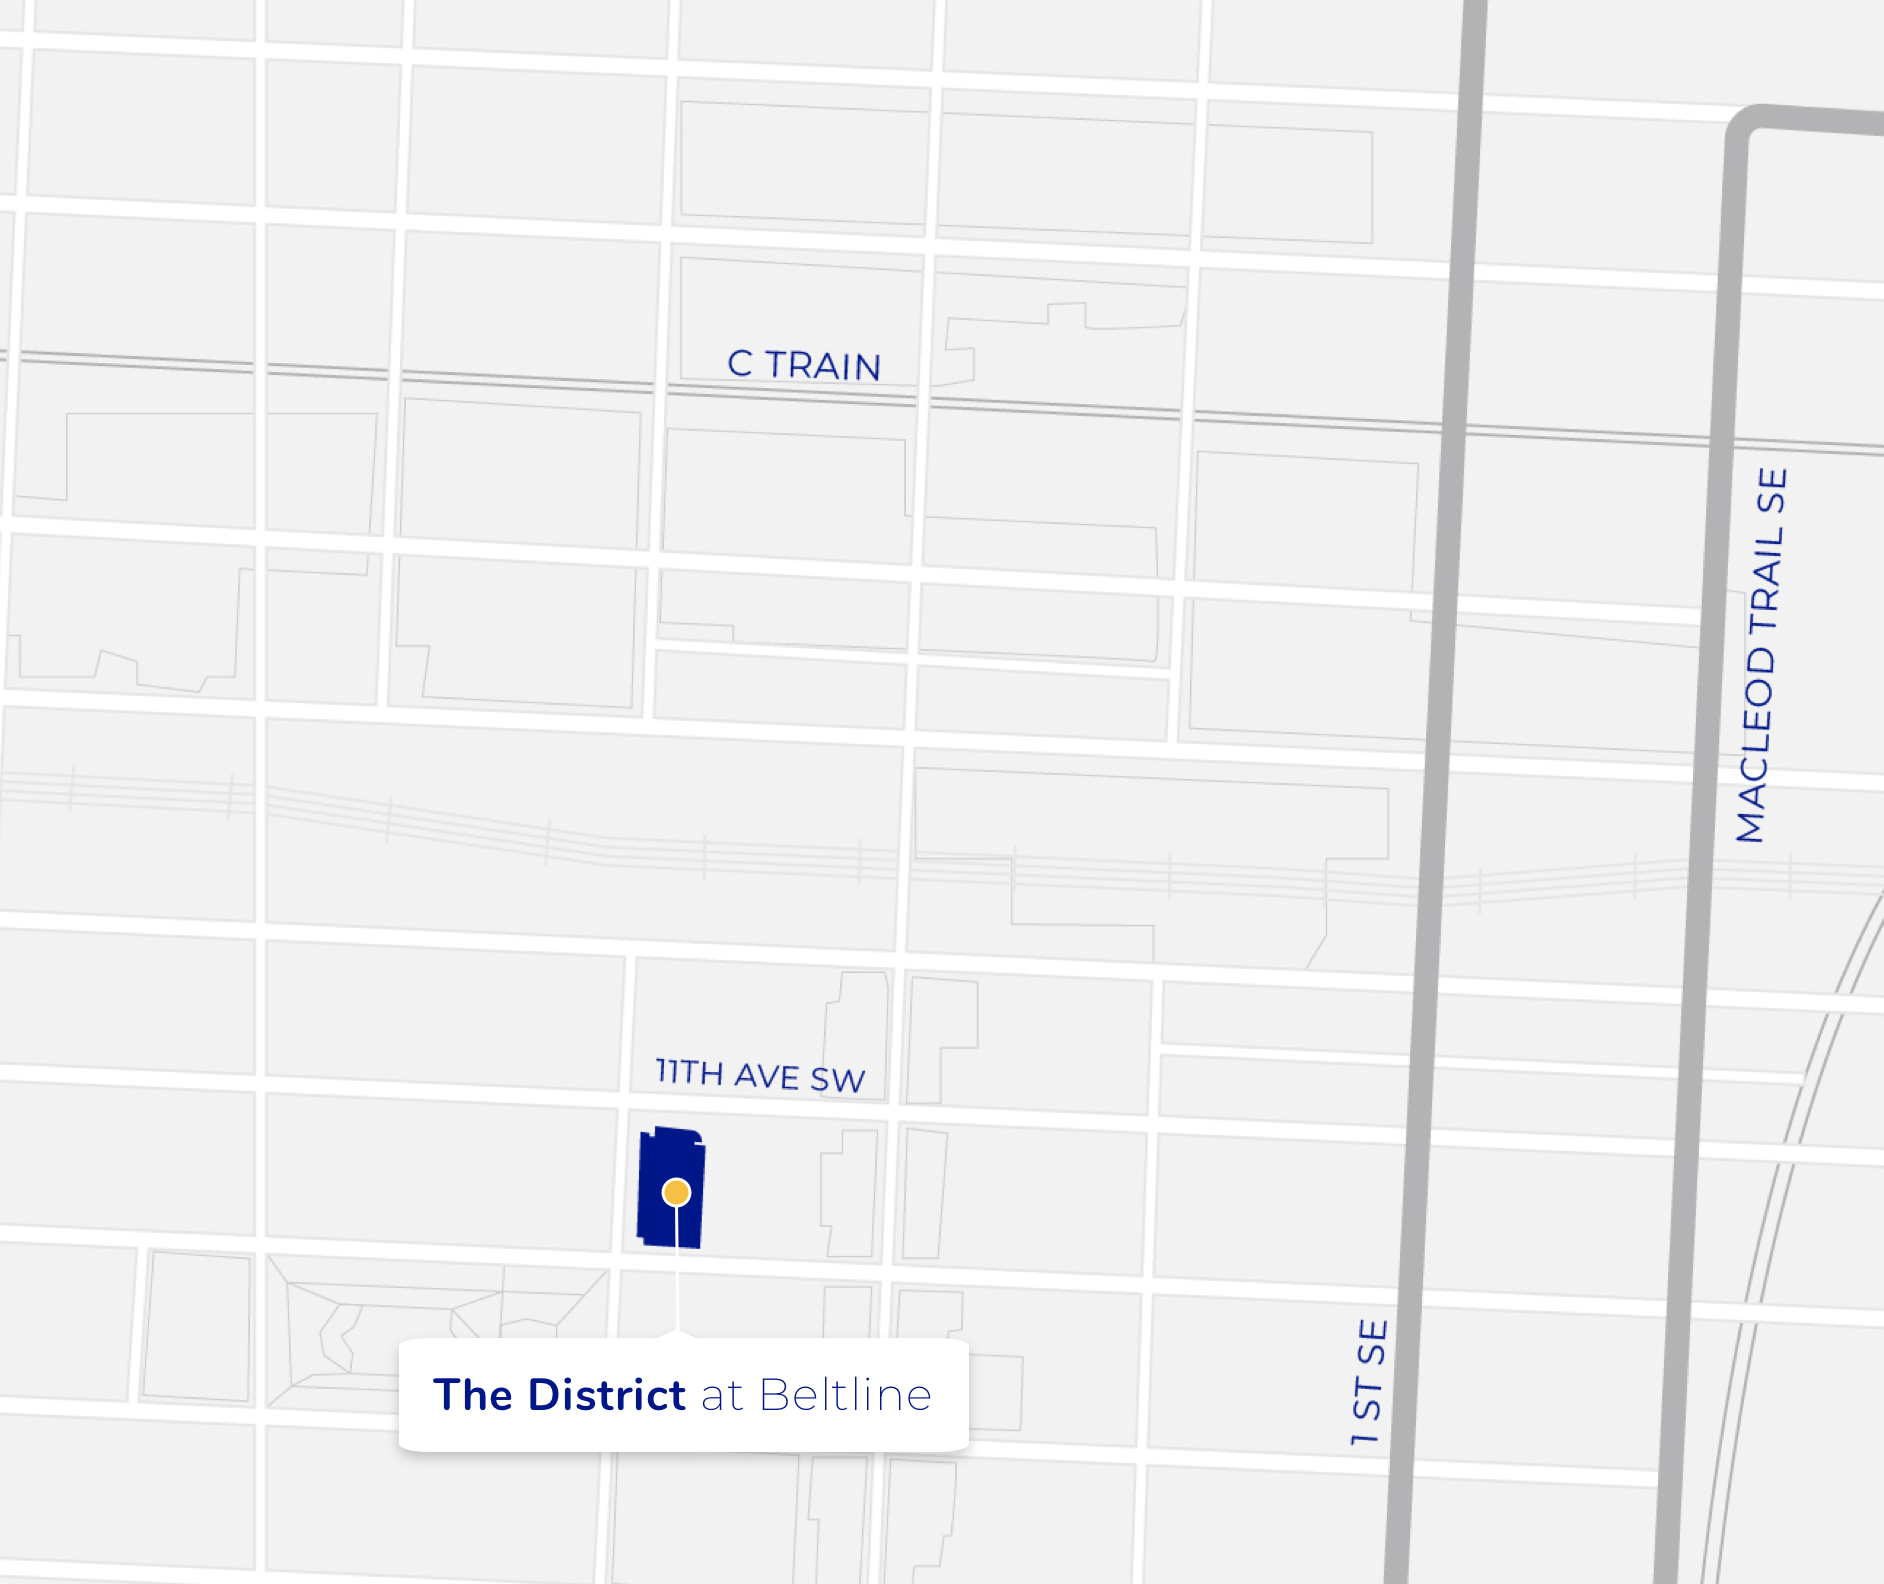 Map with icon depicting the location of The District at Beltline